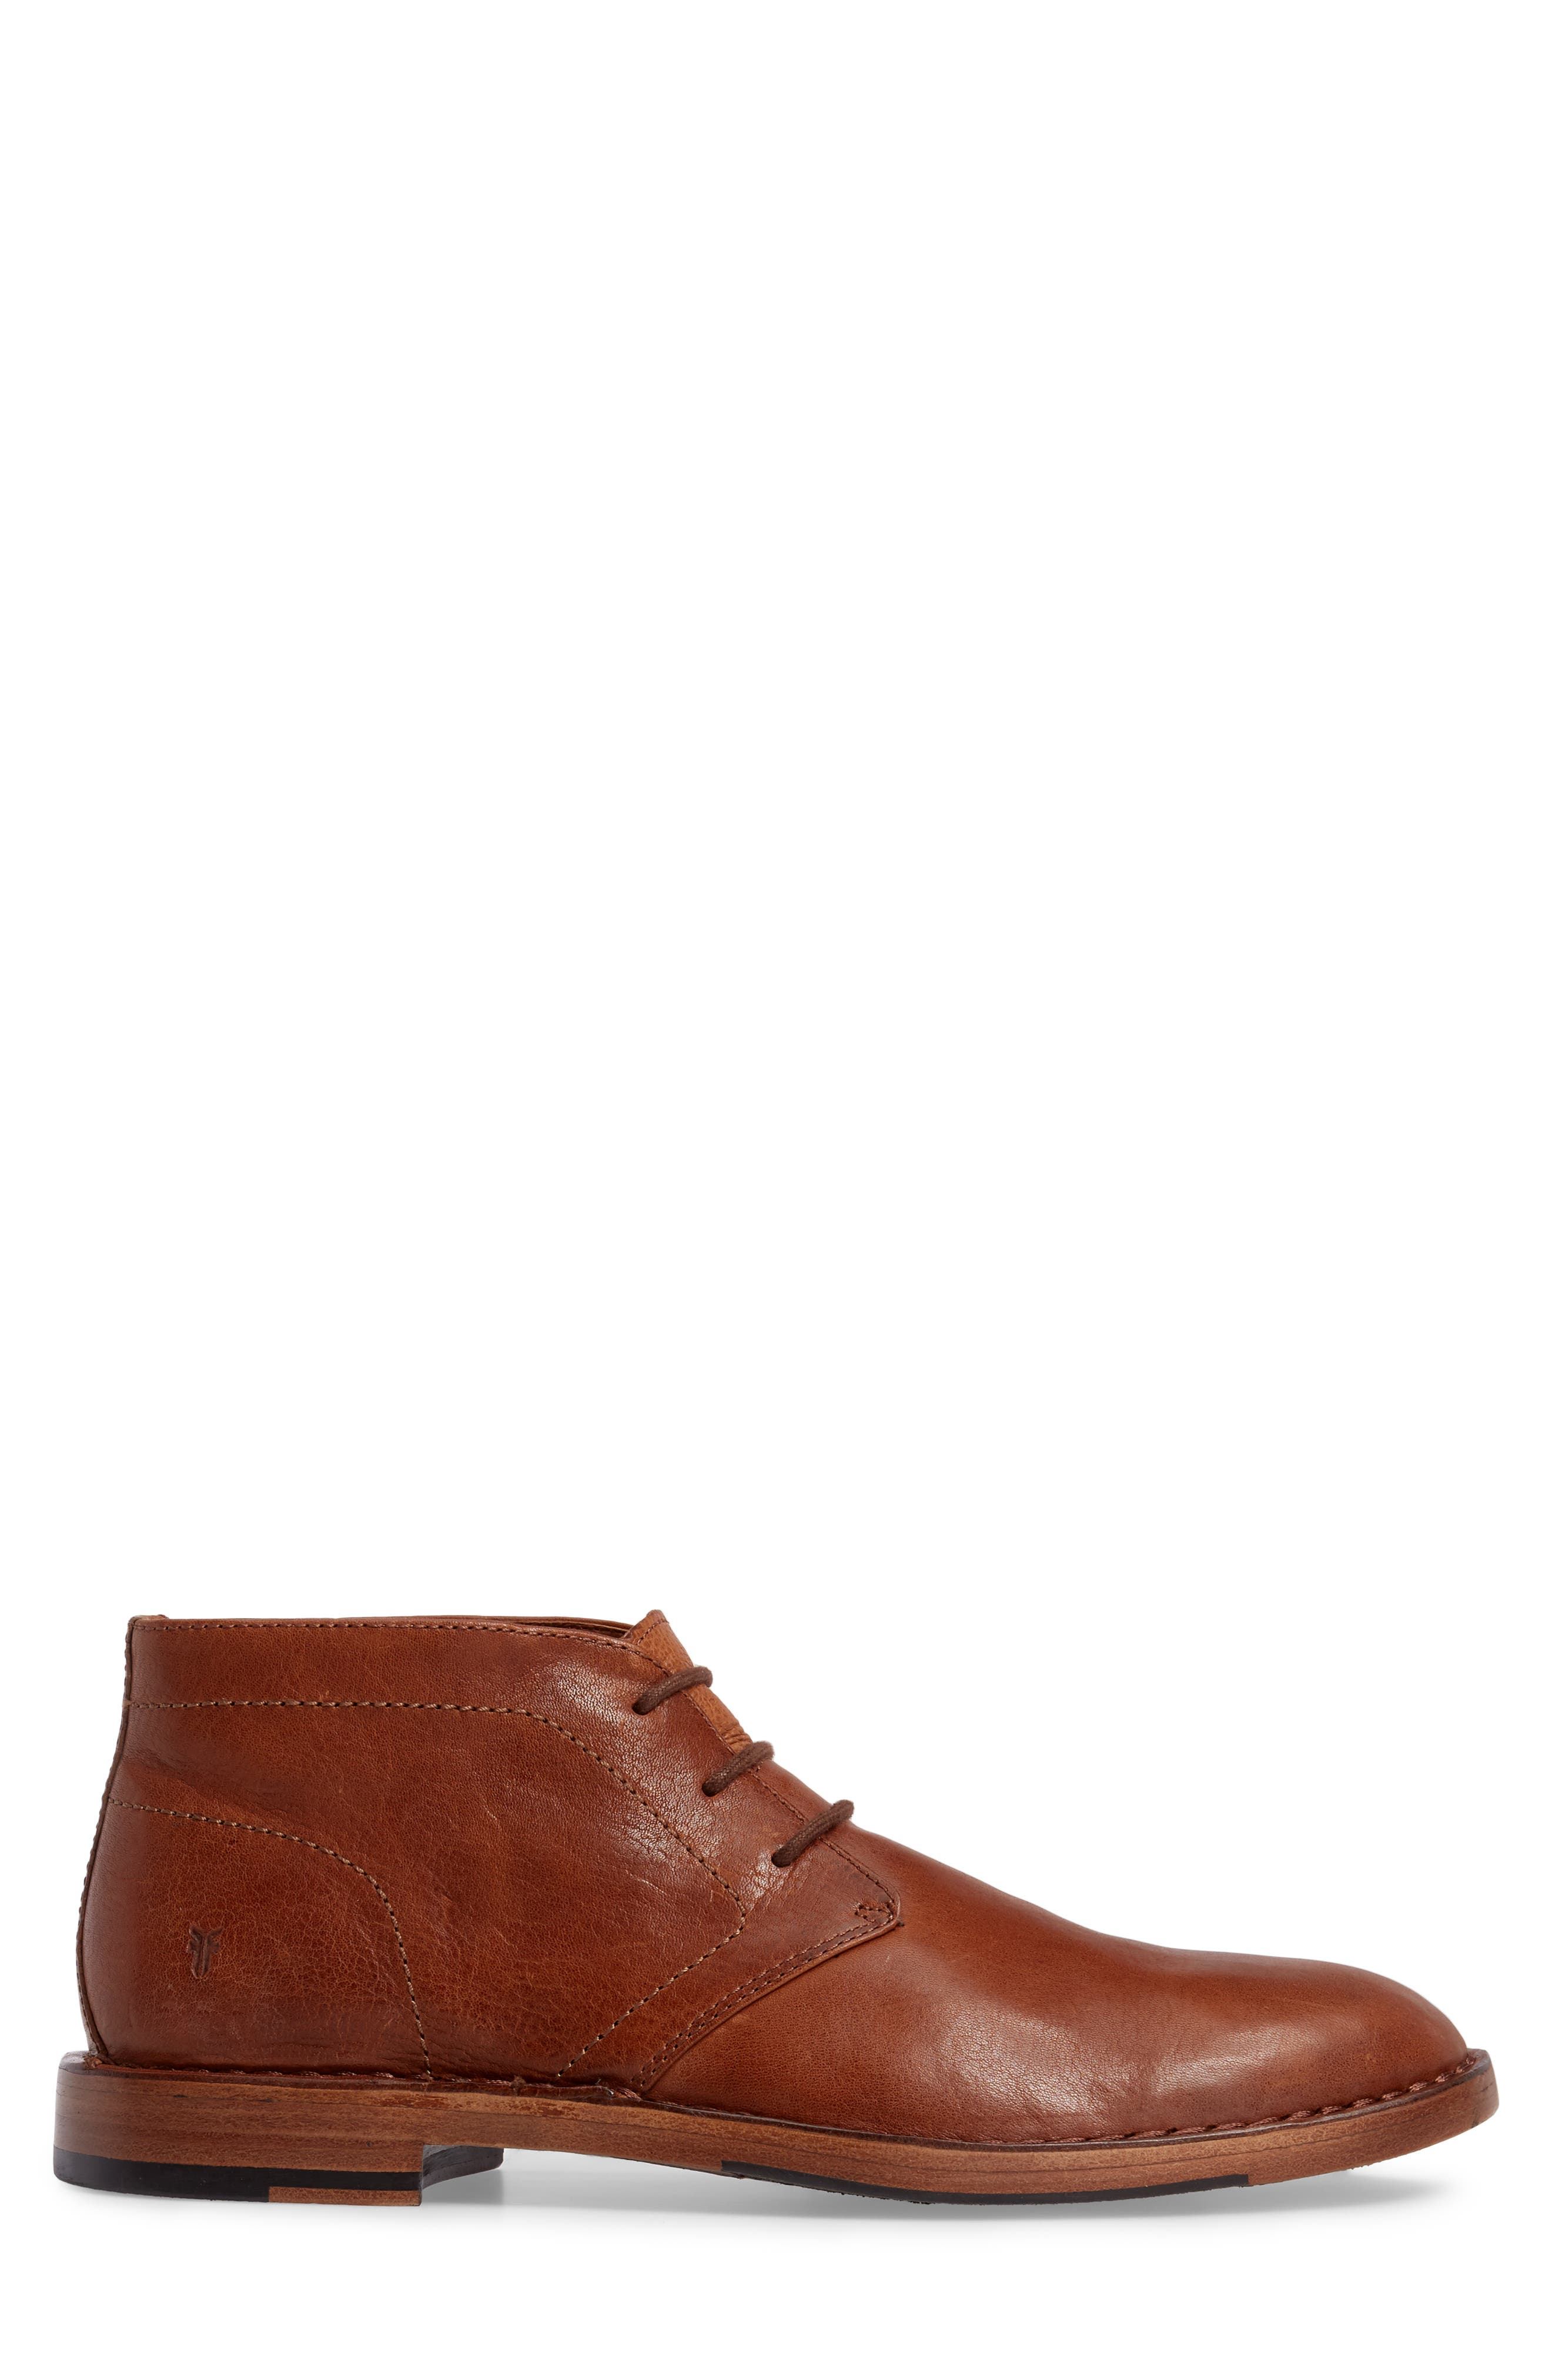 Mark Chukka Boot,                             Alternate thumbnail 3, color,                             Copper Leather